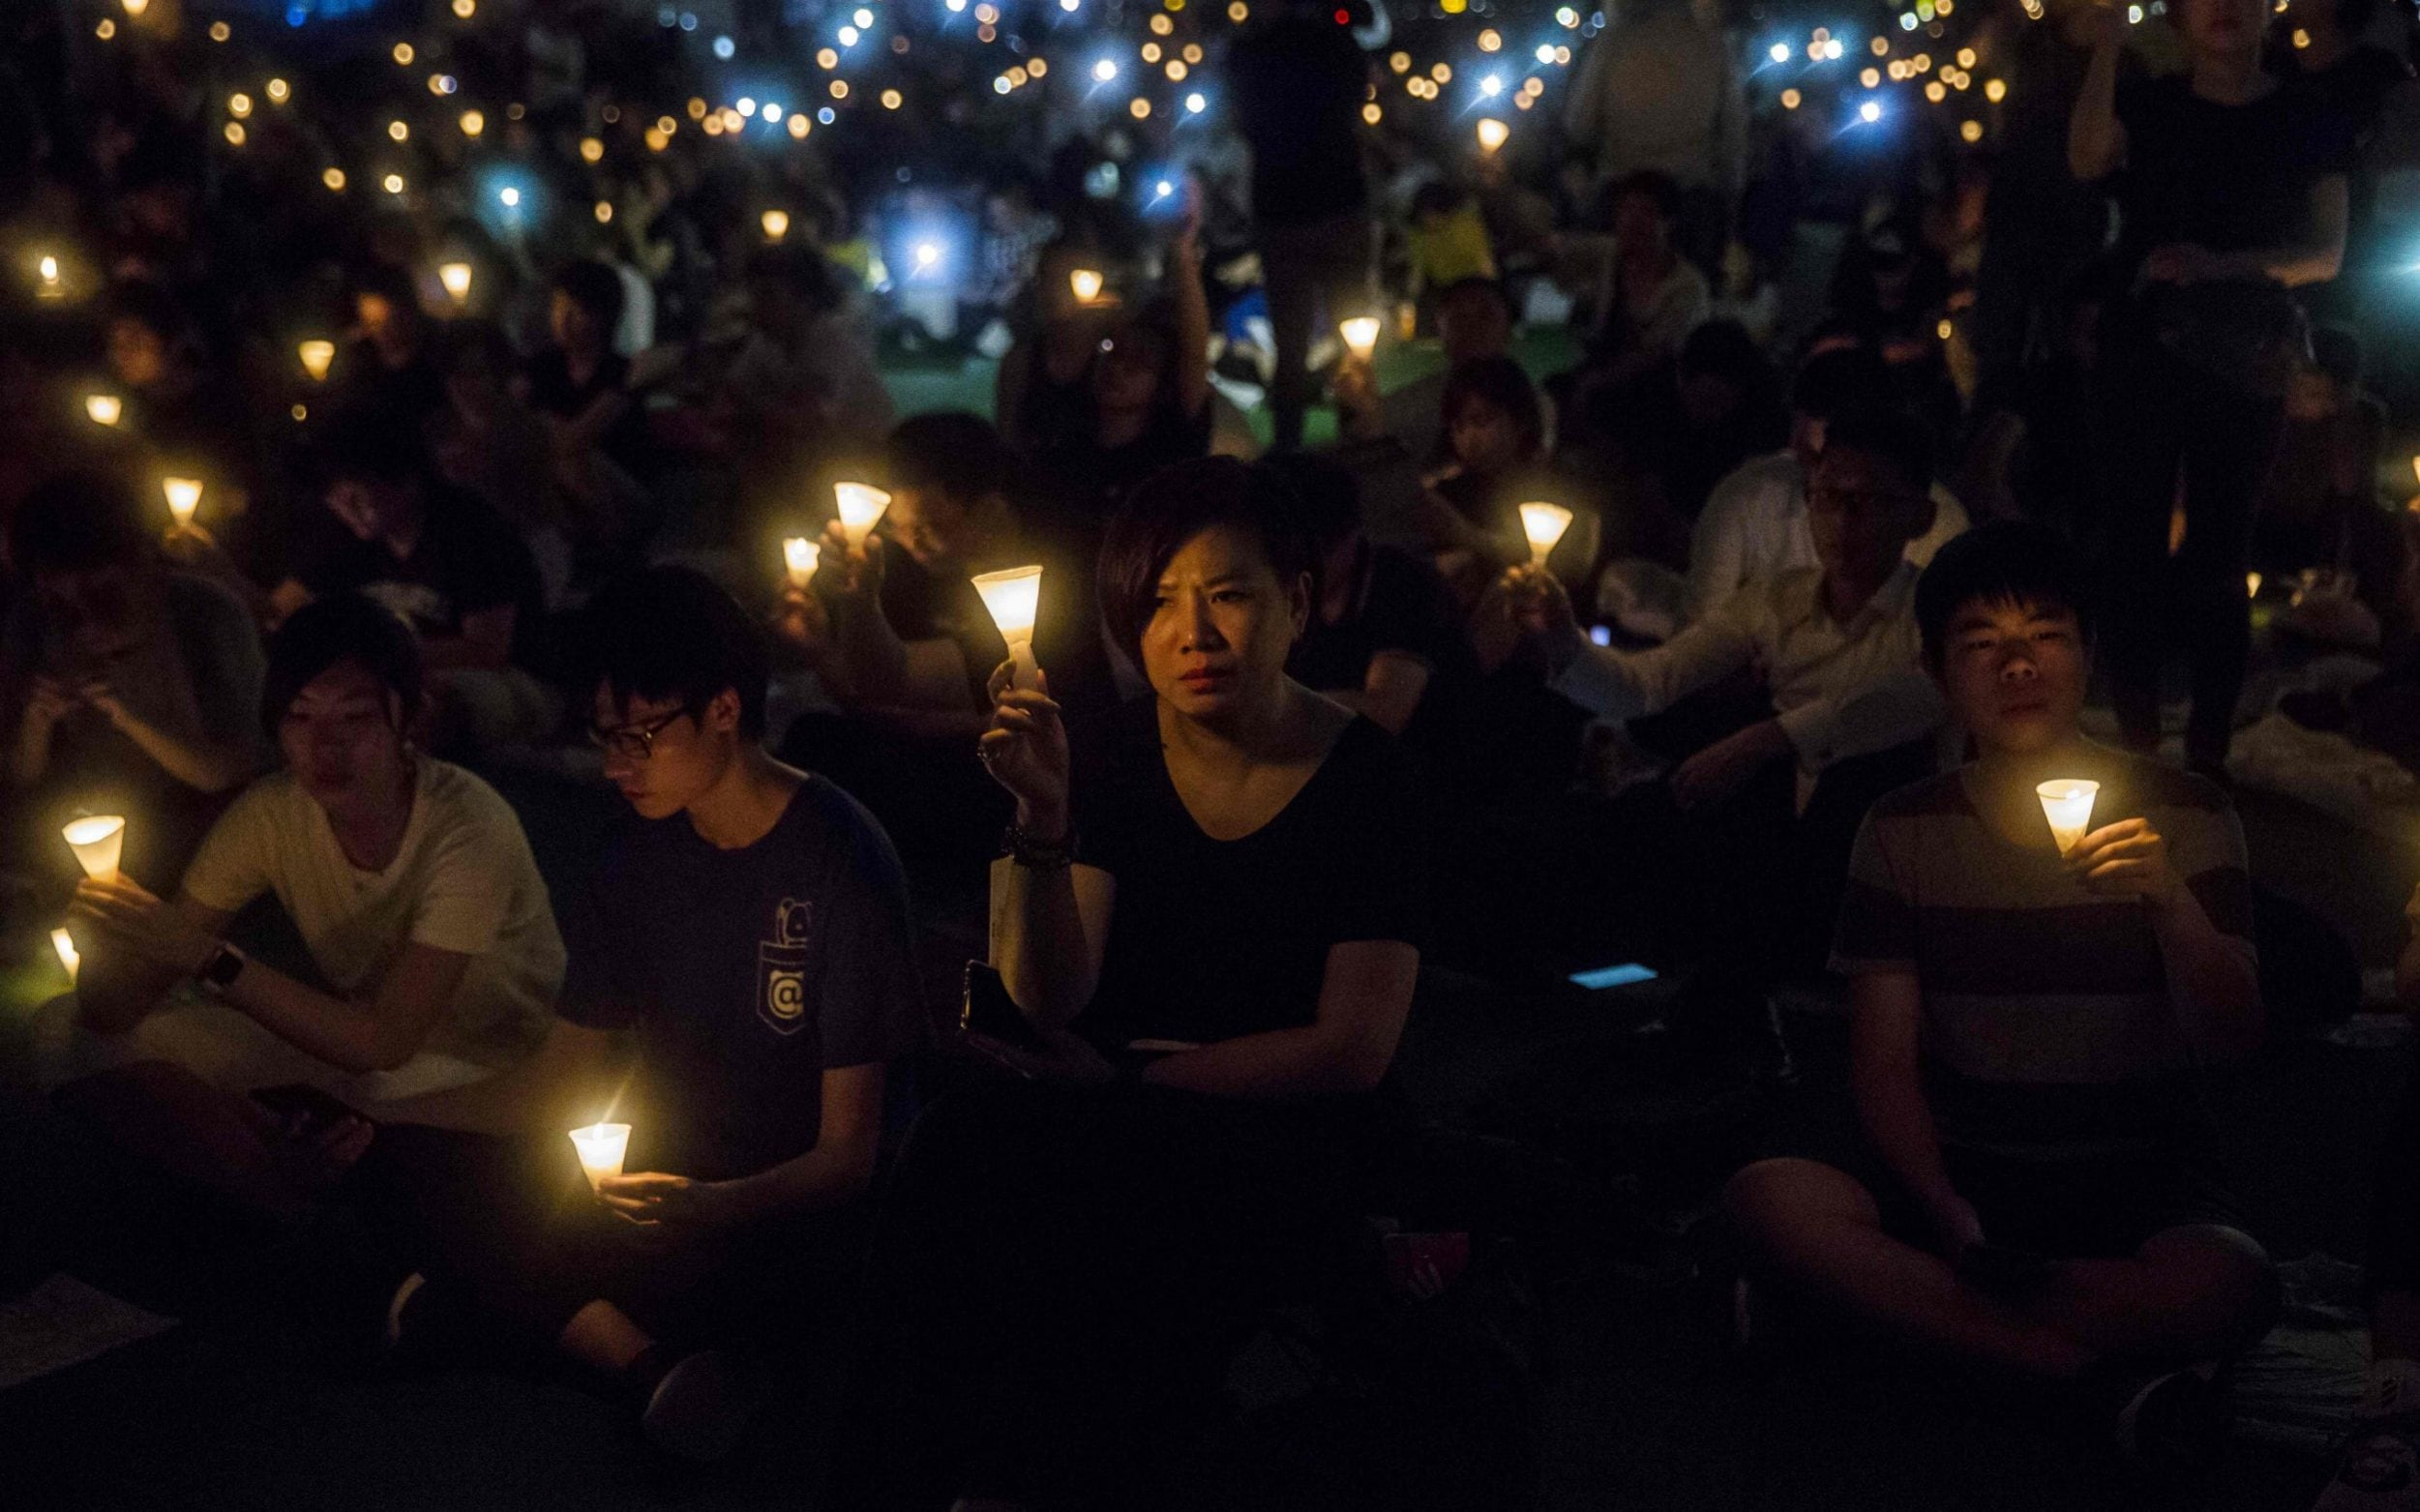 Hong KongsTiananmen commemoration banned by police for first time in three decades